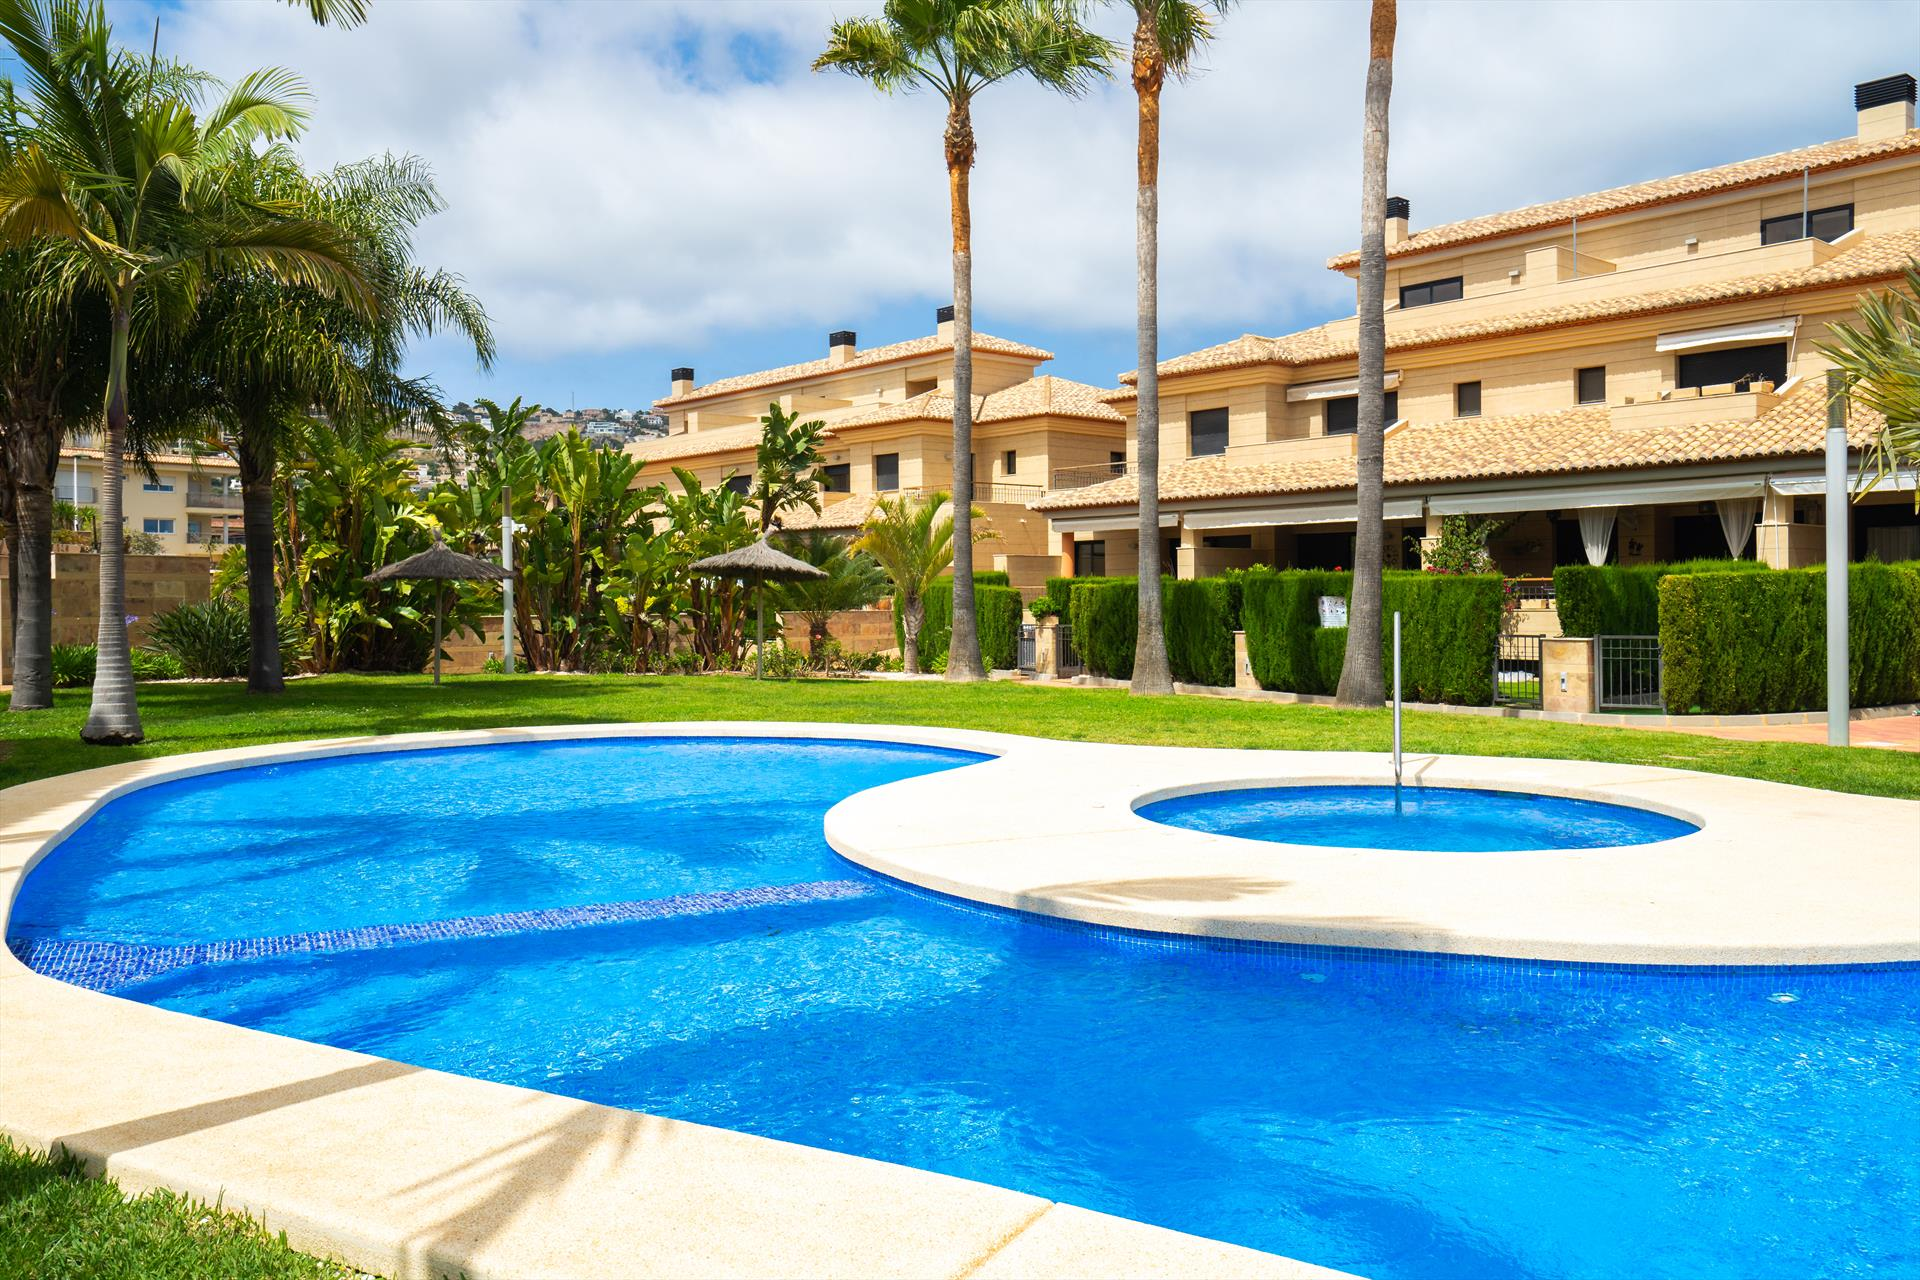 Amalia, Beautiful and cheerful apartment  with communal pool in Javea, on the Costa Blanca, Spain for 2 persons.....